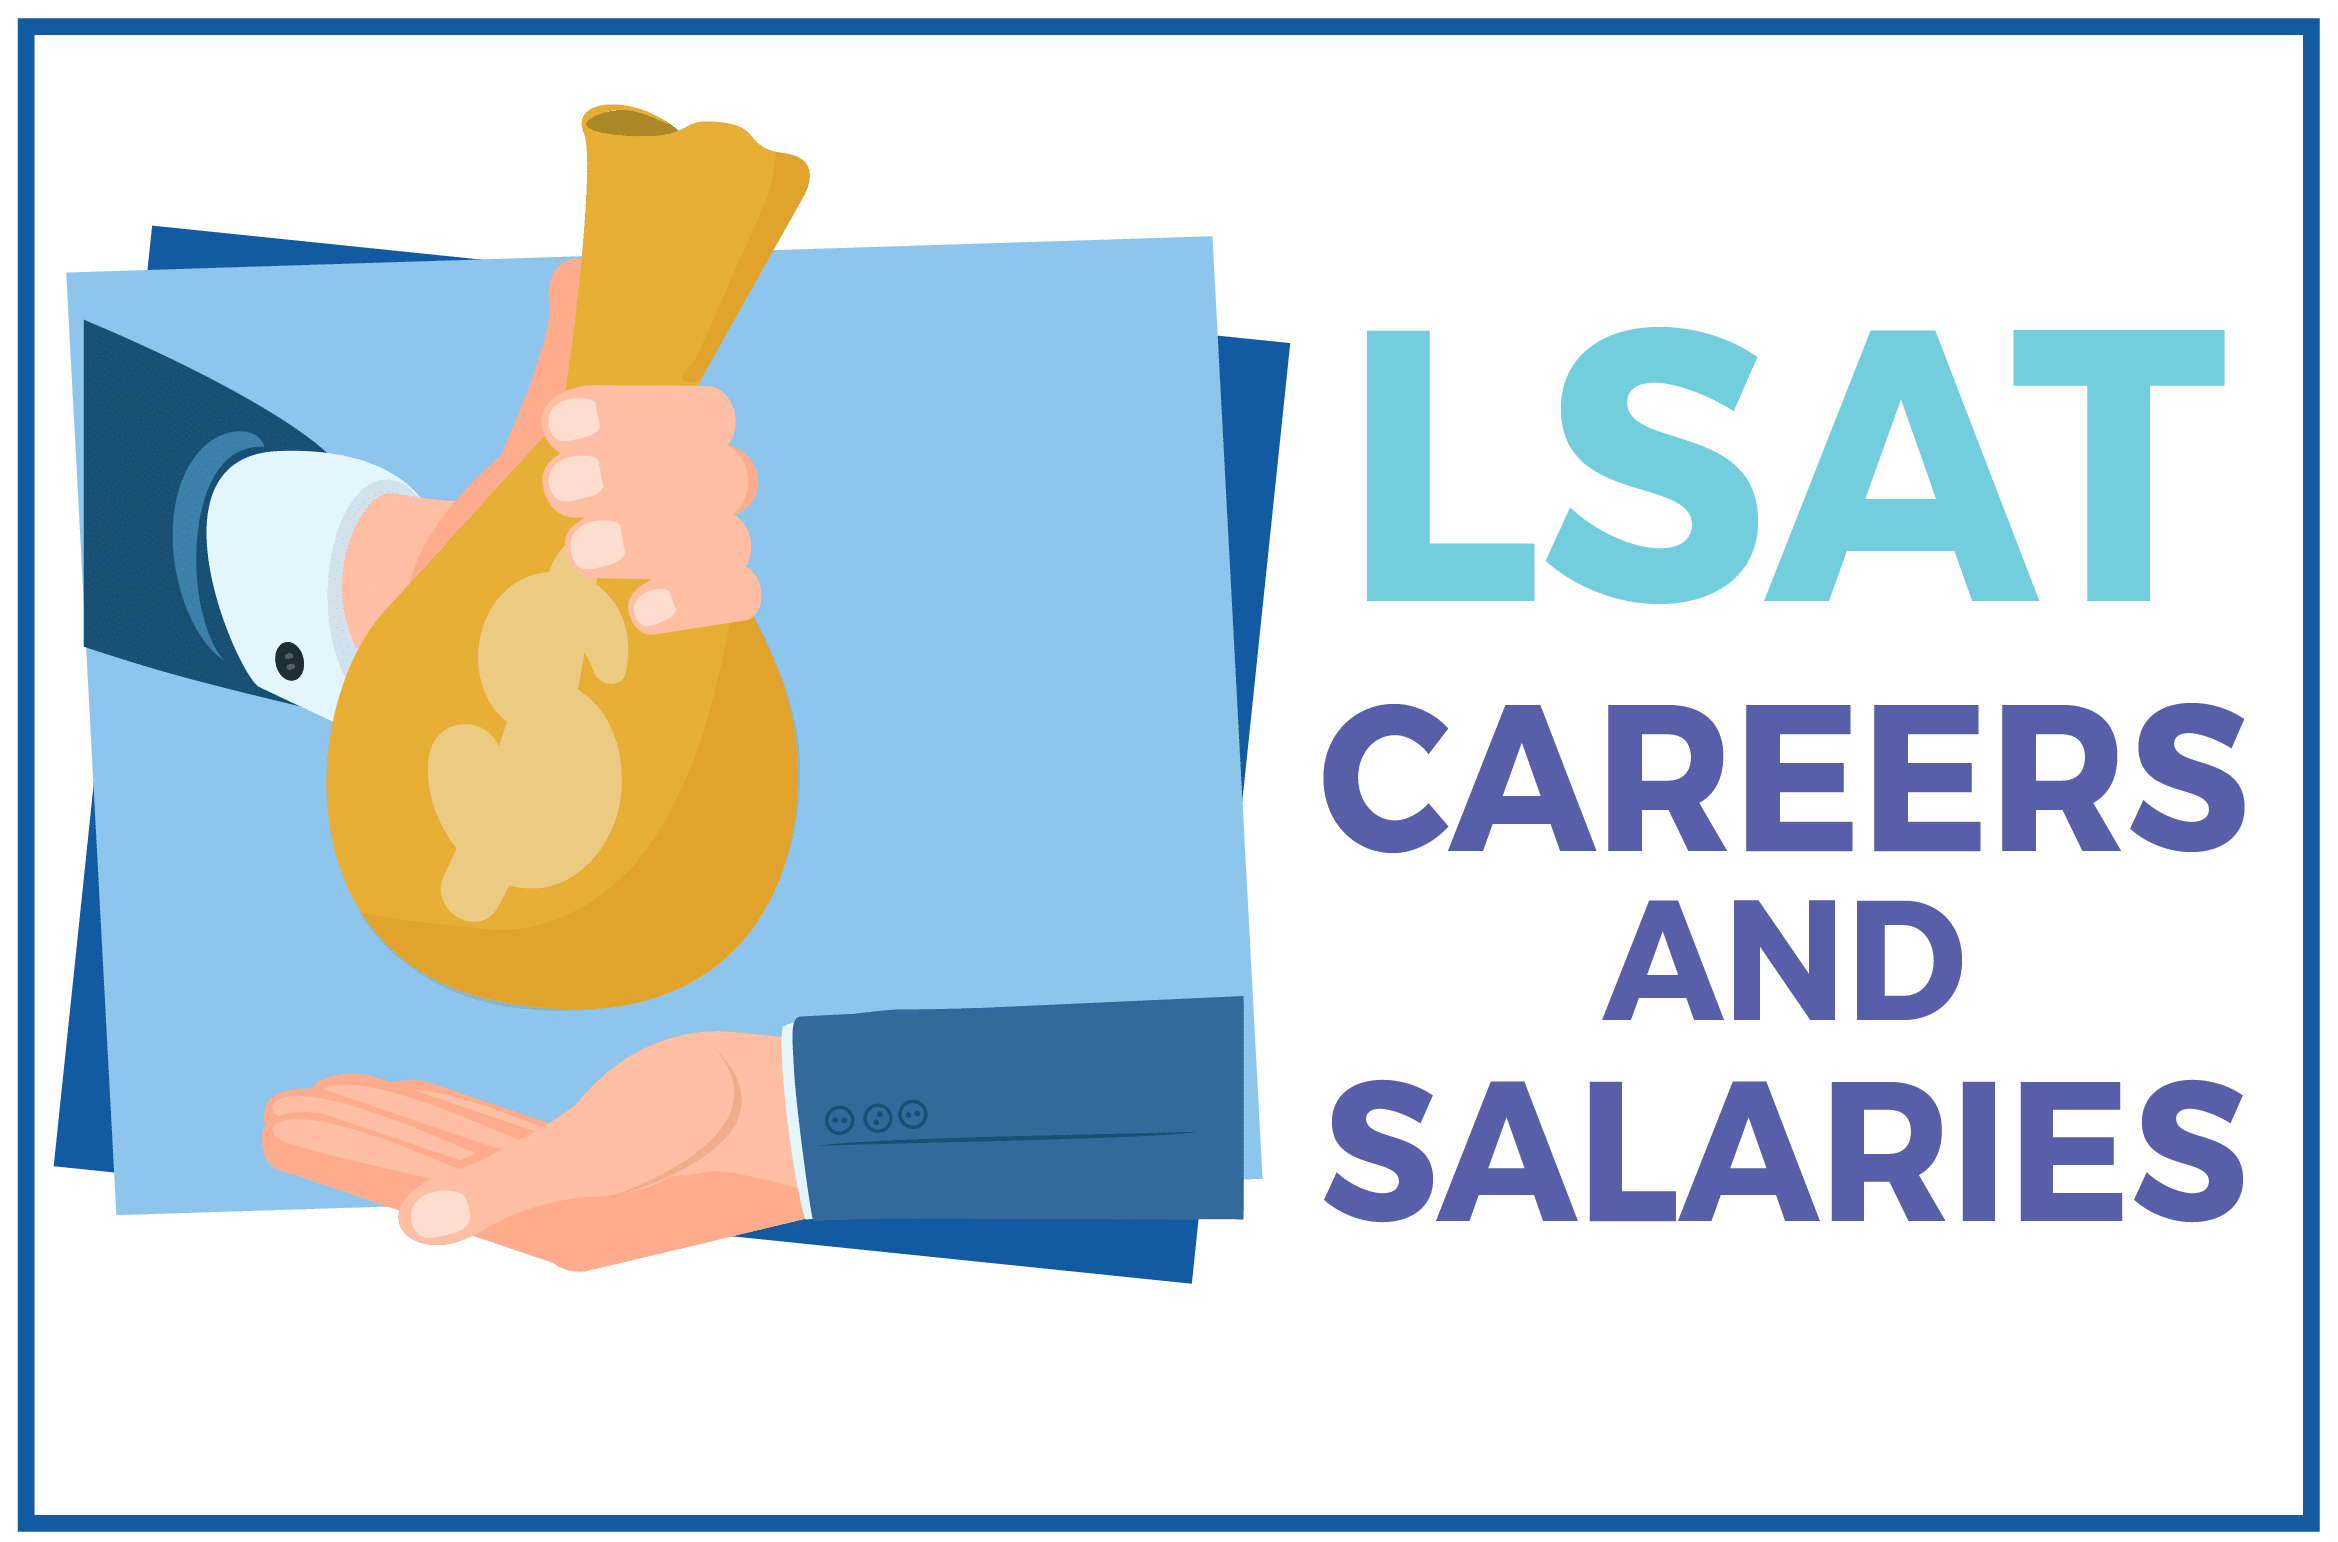 LSAT Careers and Salaries